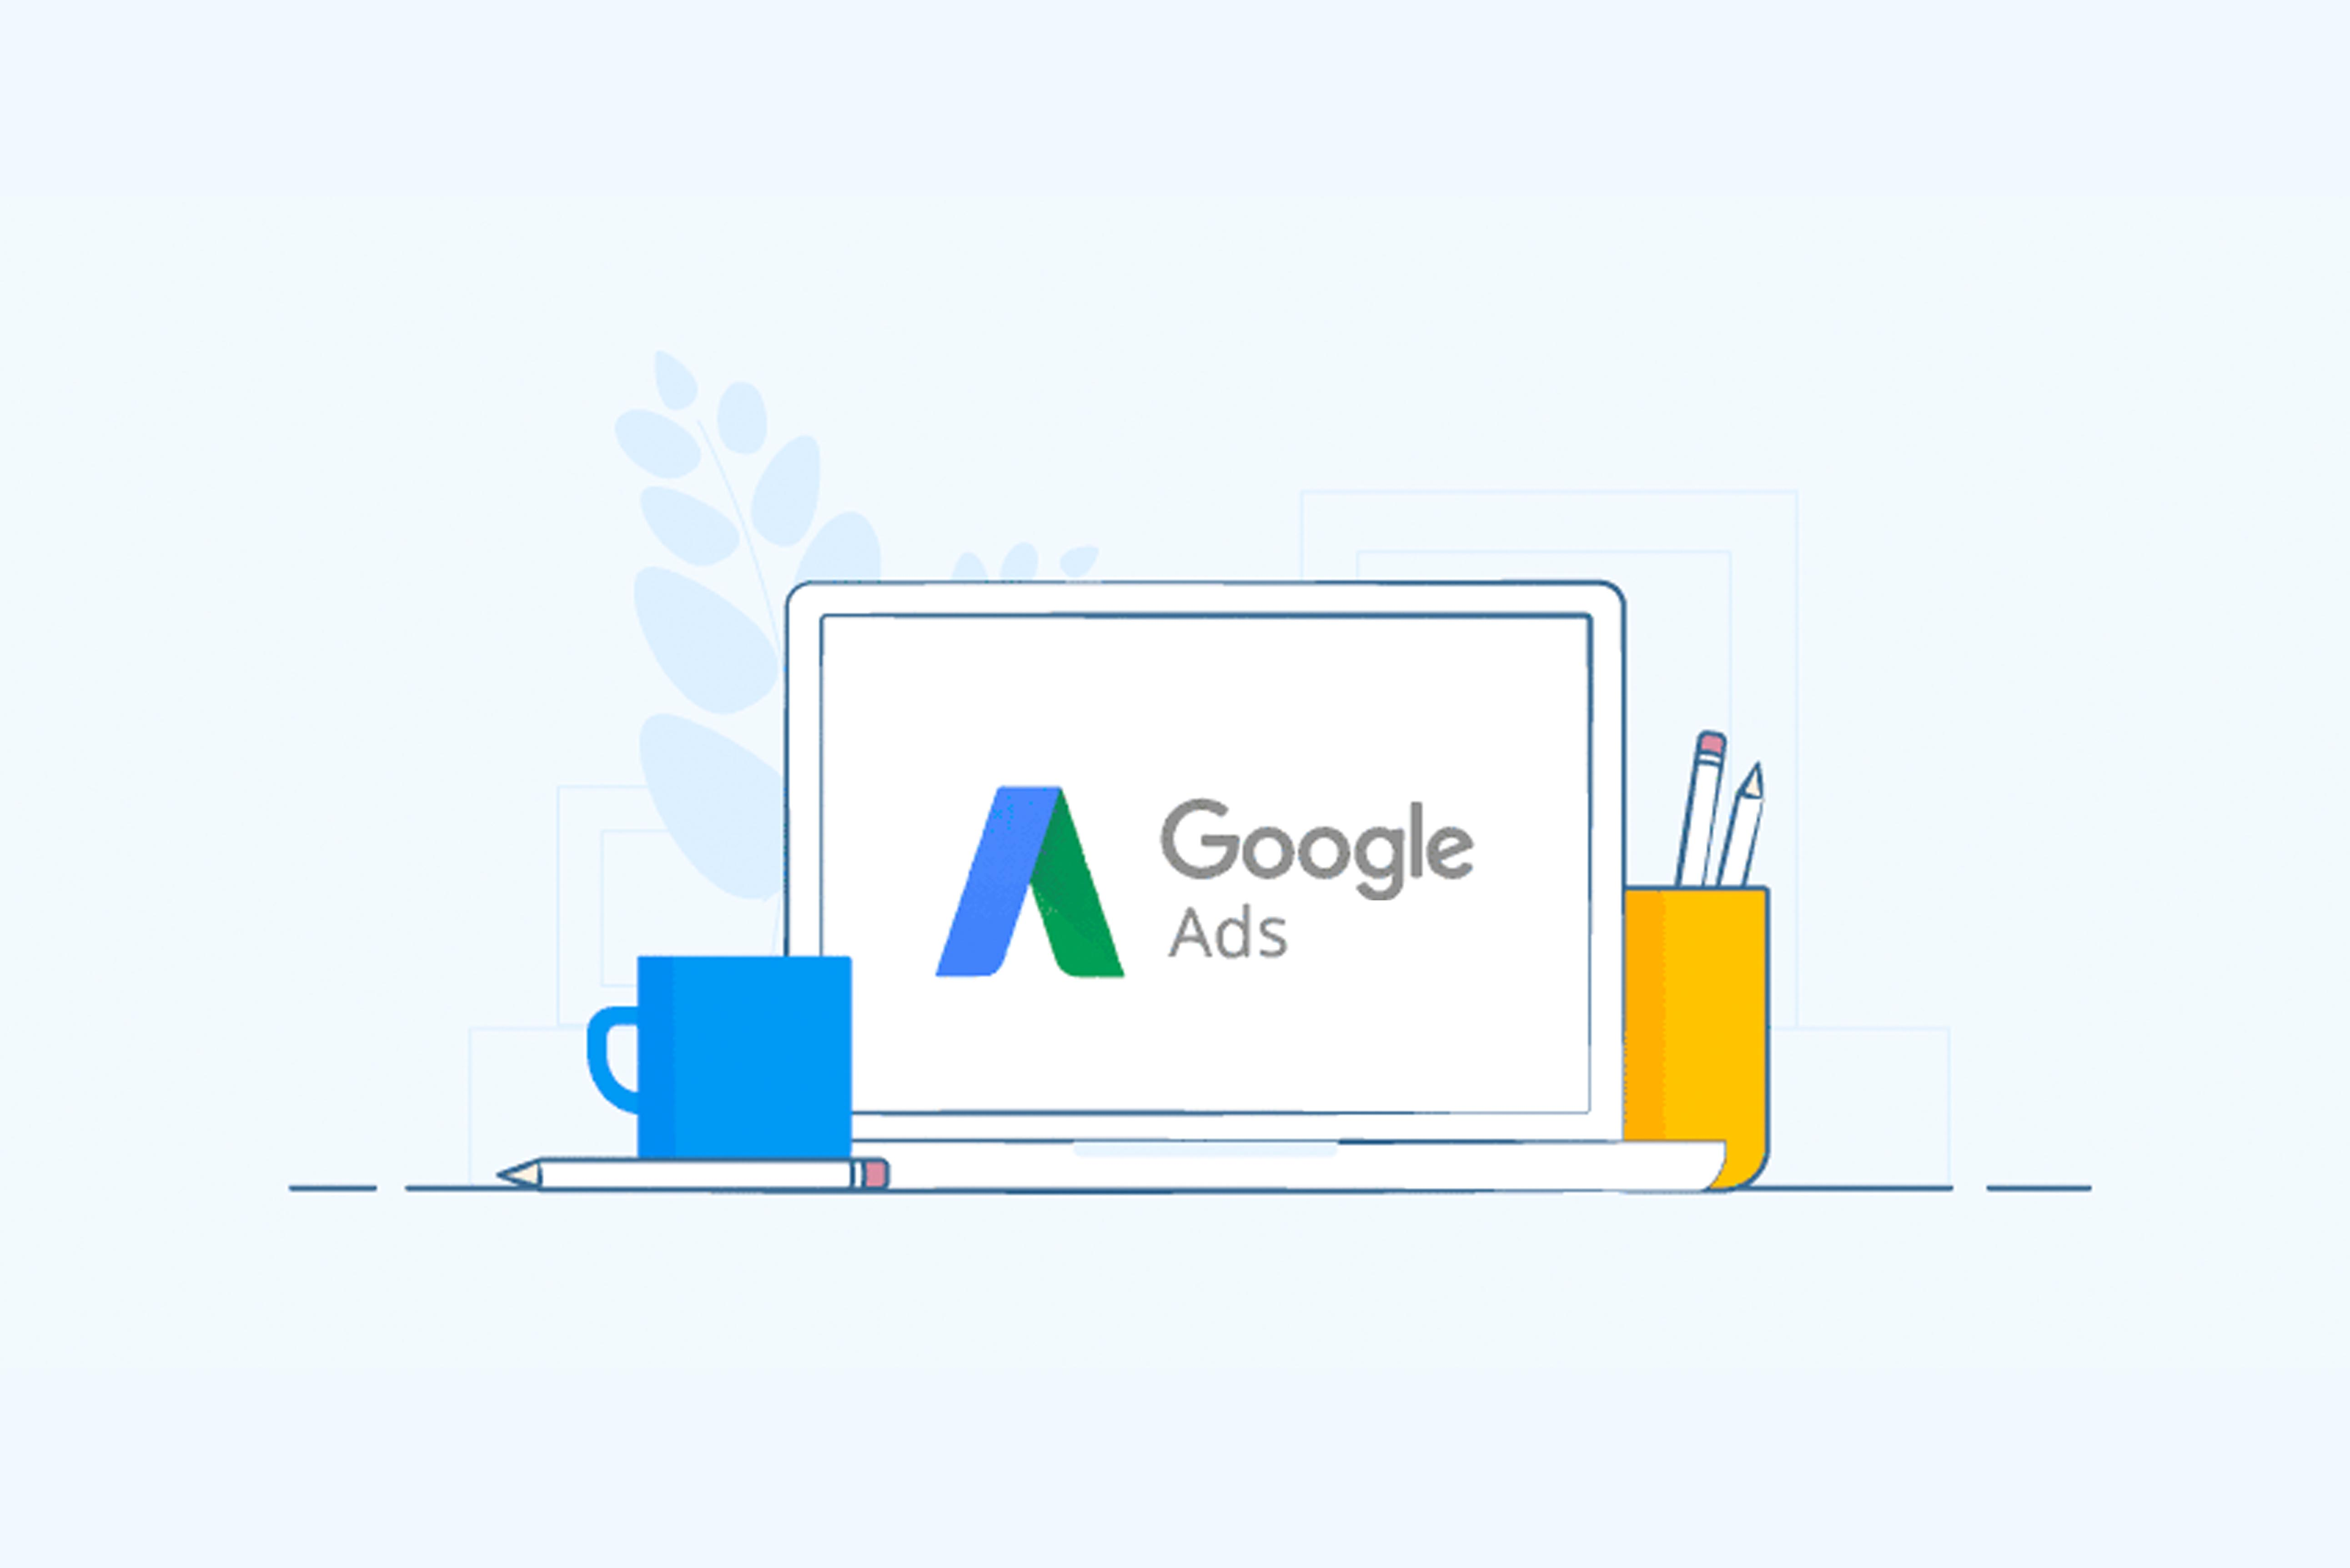 Google Ads (AdWords) coupon at 500/3000 rub. RUSSIAN